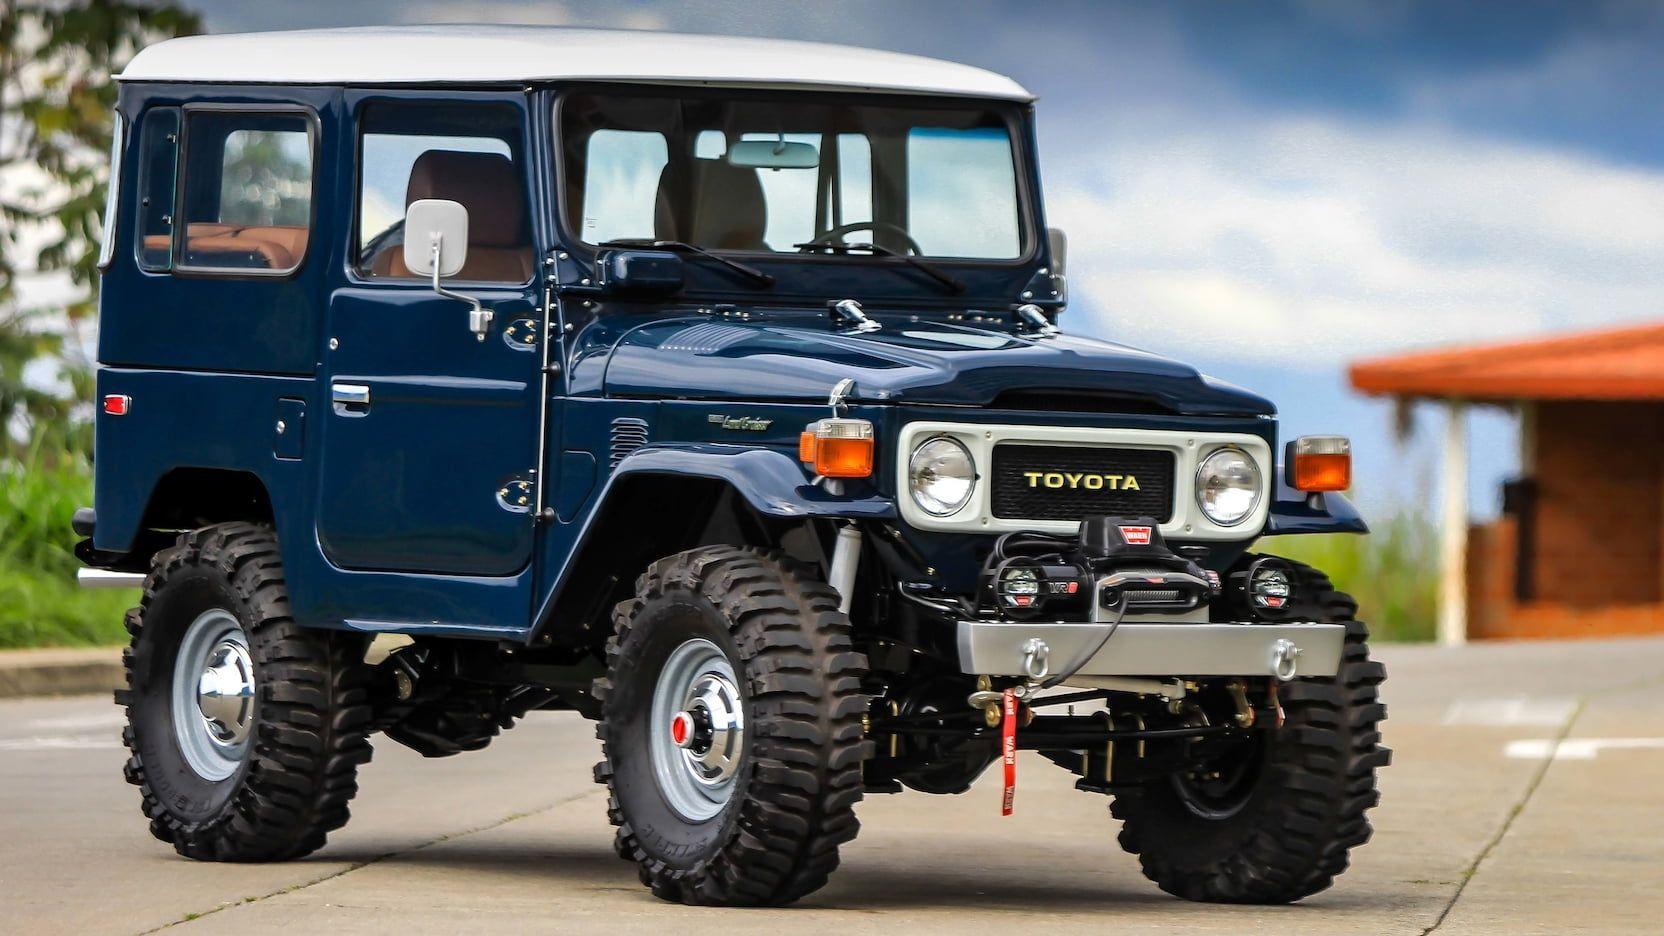 1983 Toyota Fj 40 Land Cruiser Presented As Lot S245 At Harrisburg Pa Land Cruiser Fj40 Landcruiser Toyota Fj40